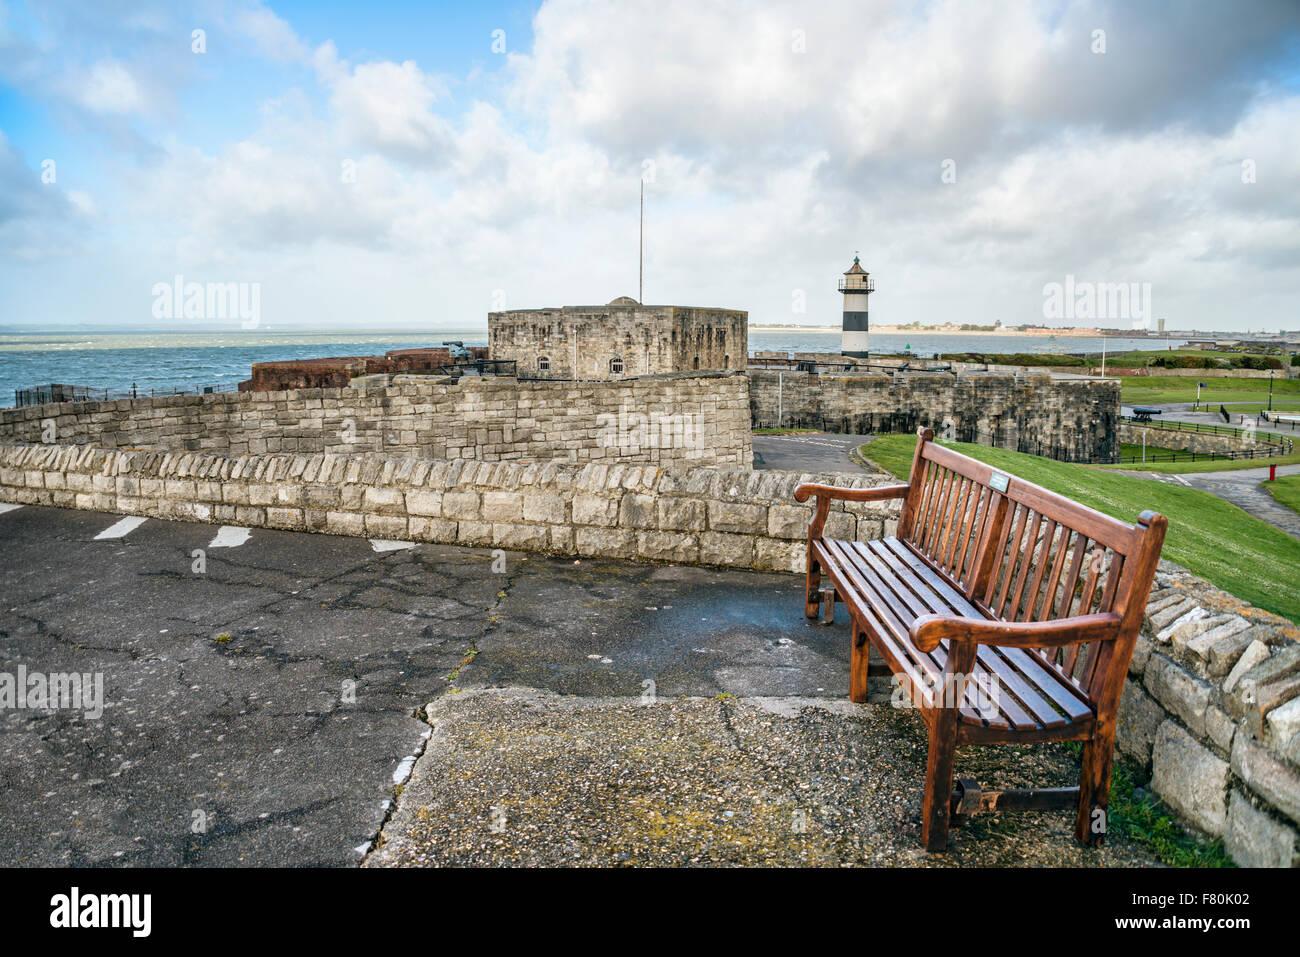 Southsea Castle and lighthouse seen from Southsea Commons, Portsmouth, England, UK - Stock Image